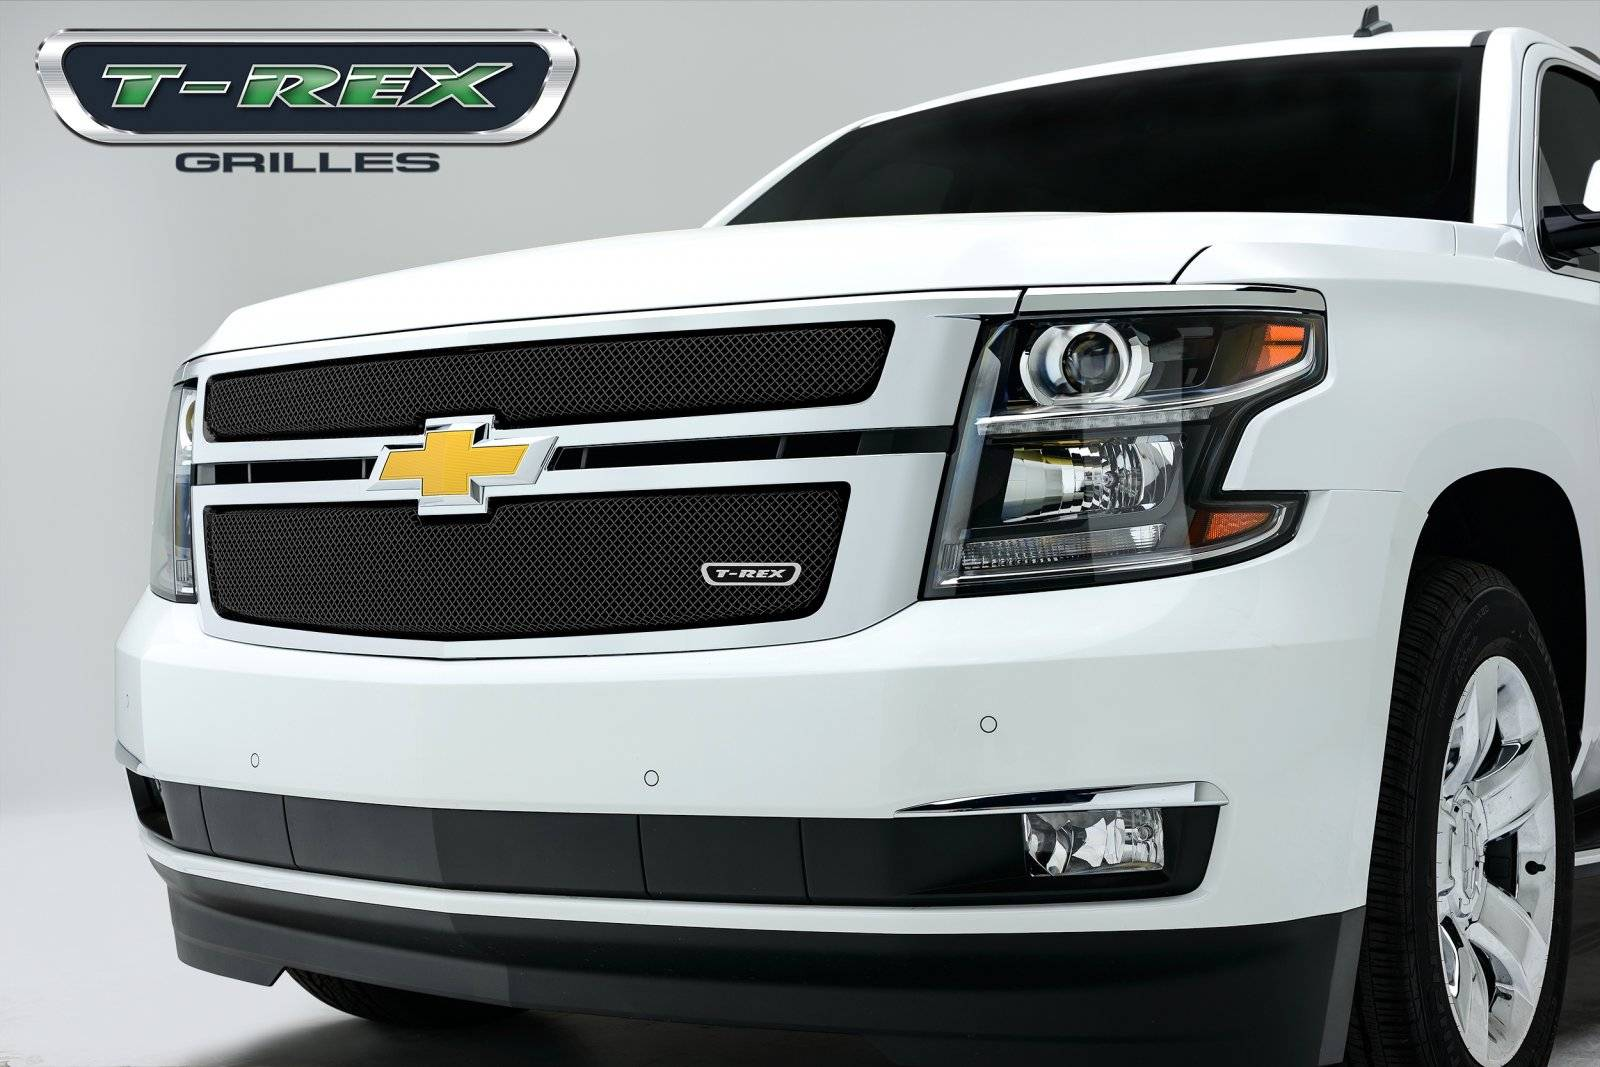 T-REX Grilles - 2015-2020 Suburban and Tahoe LT, LTZ Sport Grille, Black, 2 Pc, Overlay - PN #46055